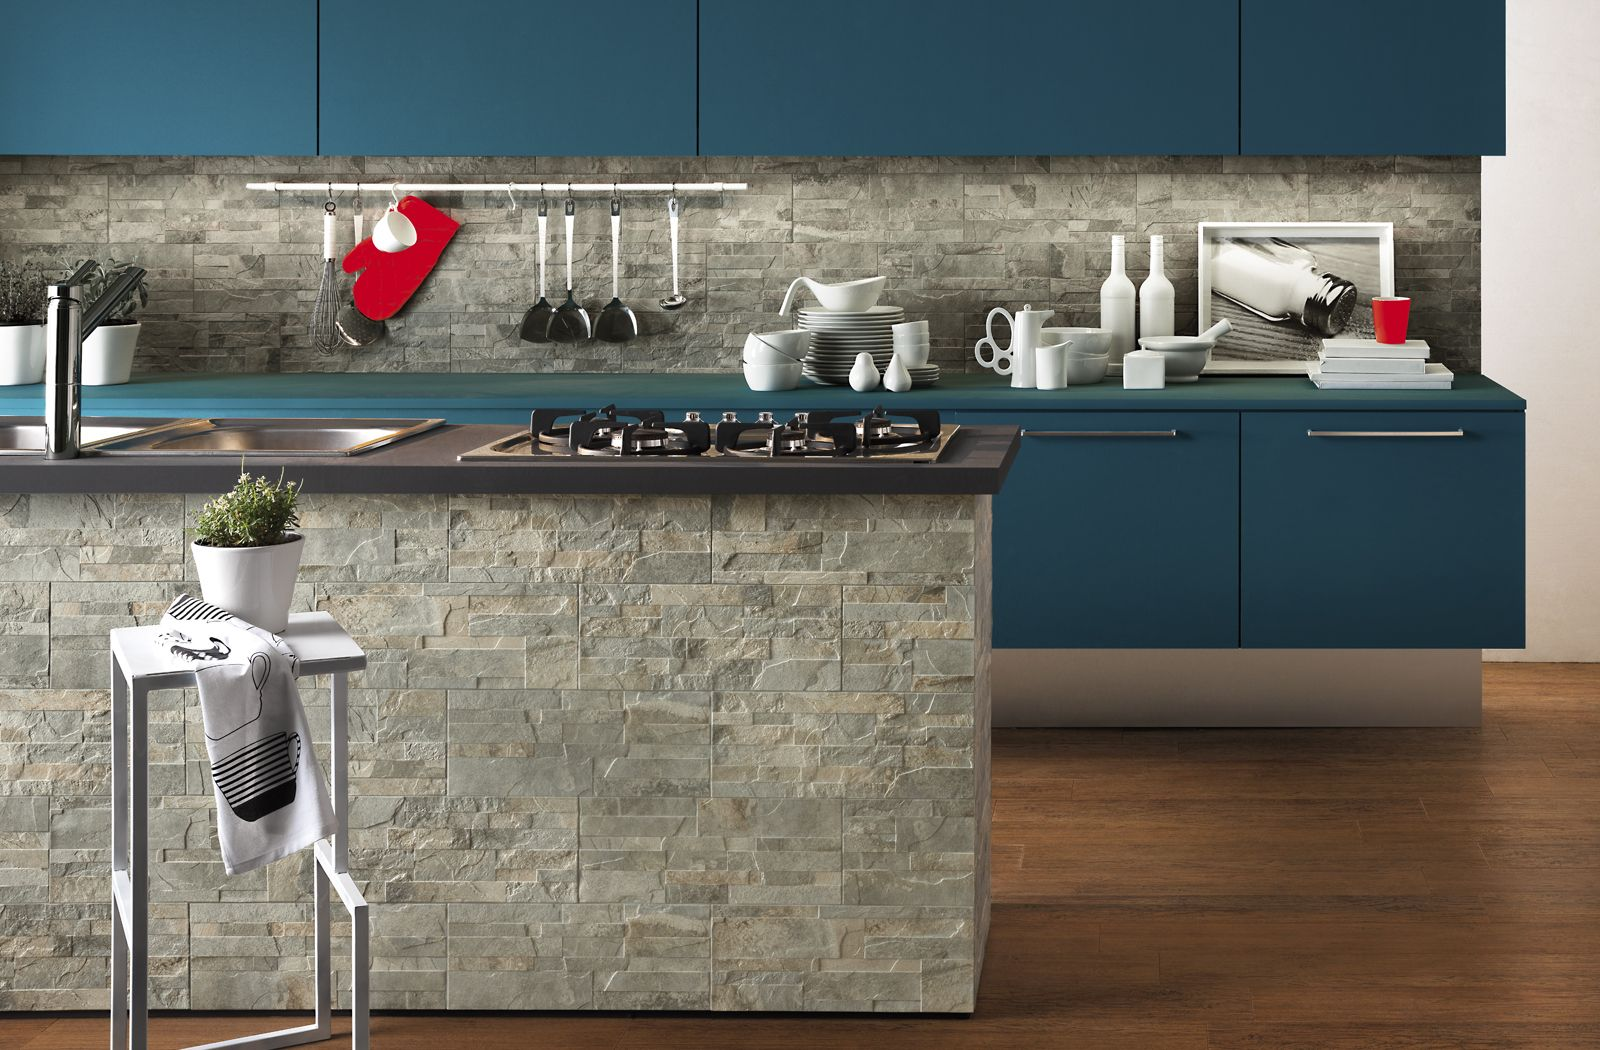 Kitchen Design And Tiles Kitchen Island And Backsplash Surface With Pavewall Tile From